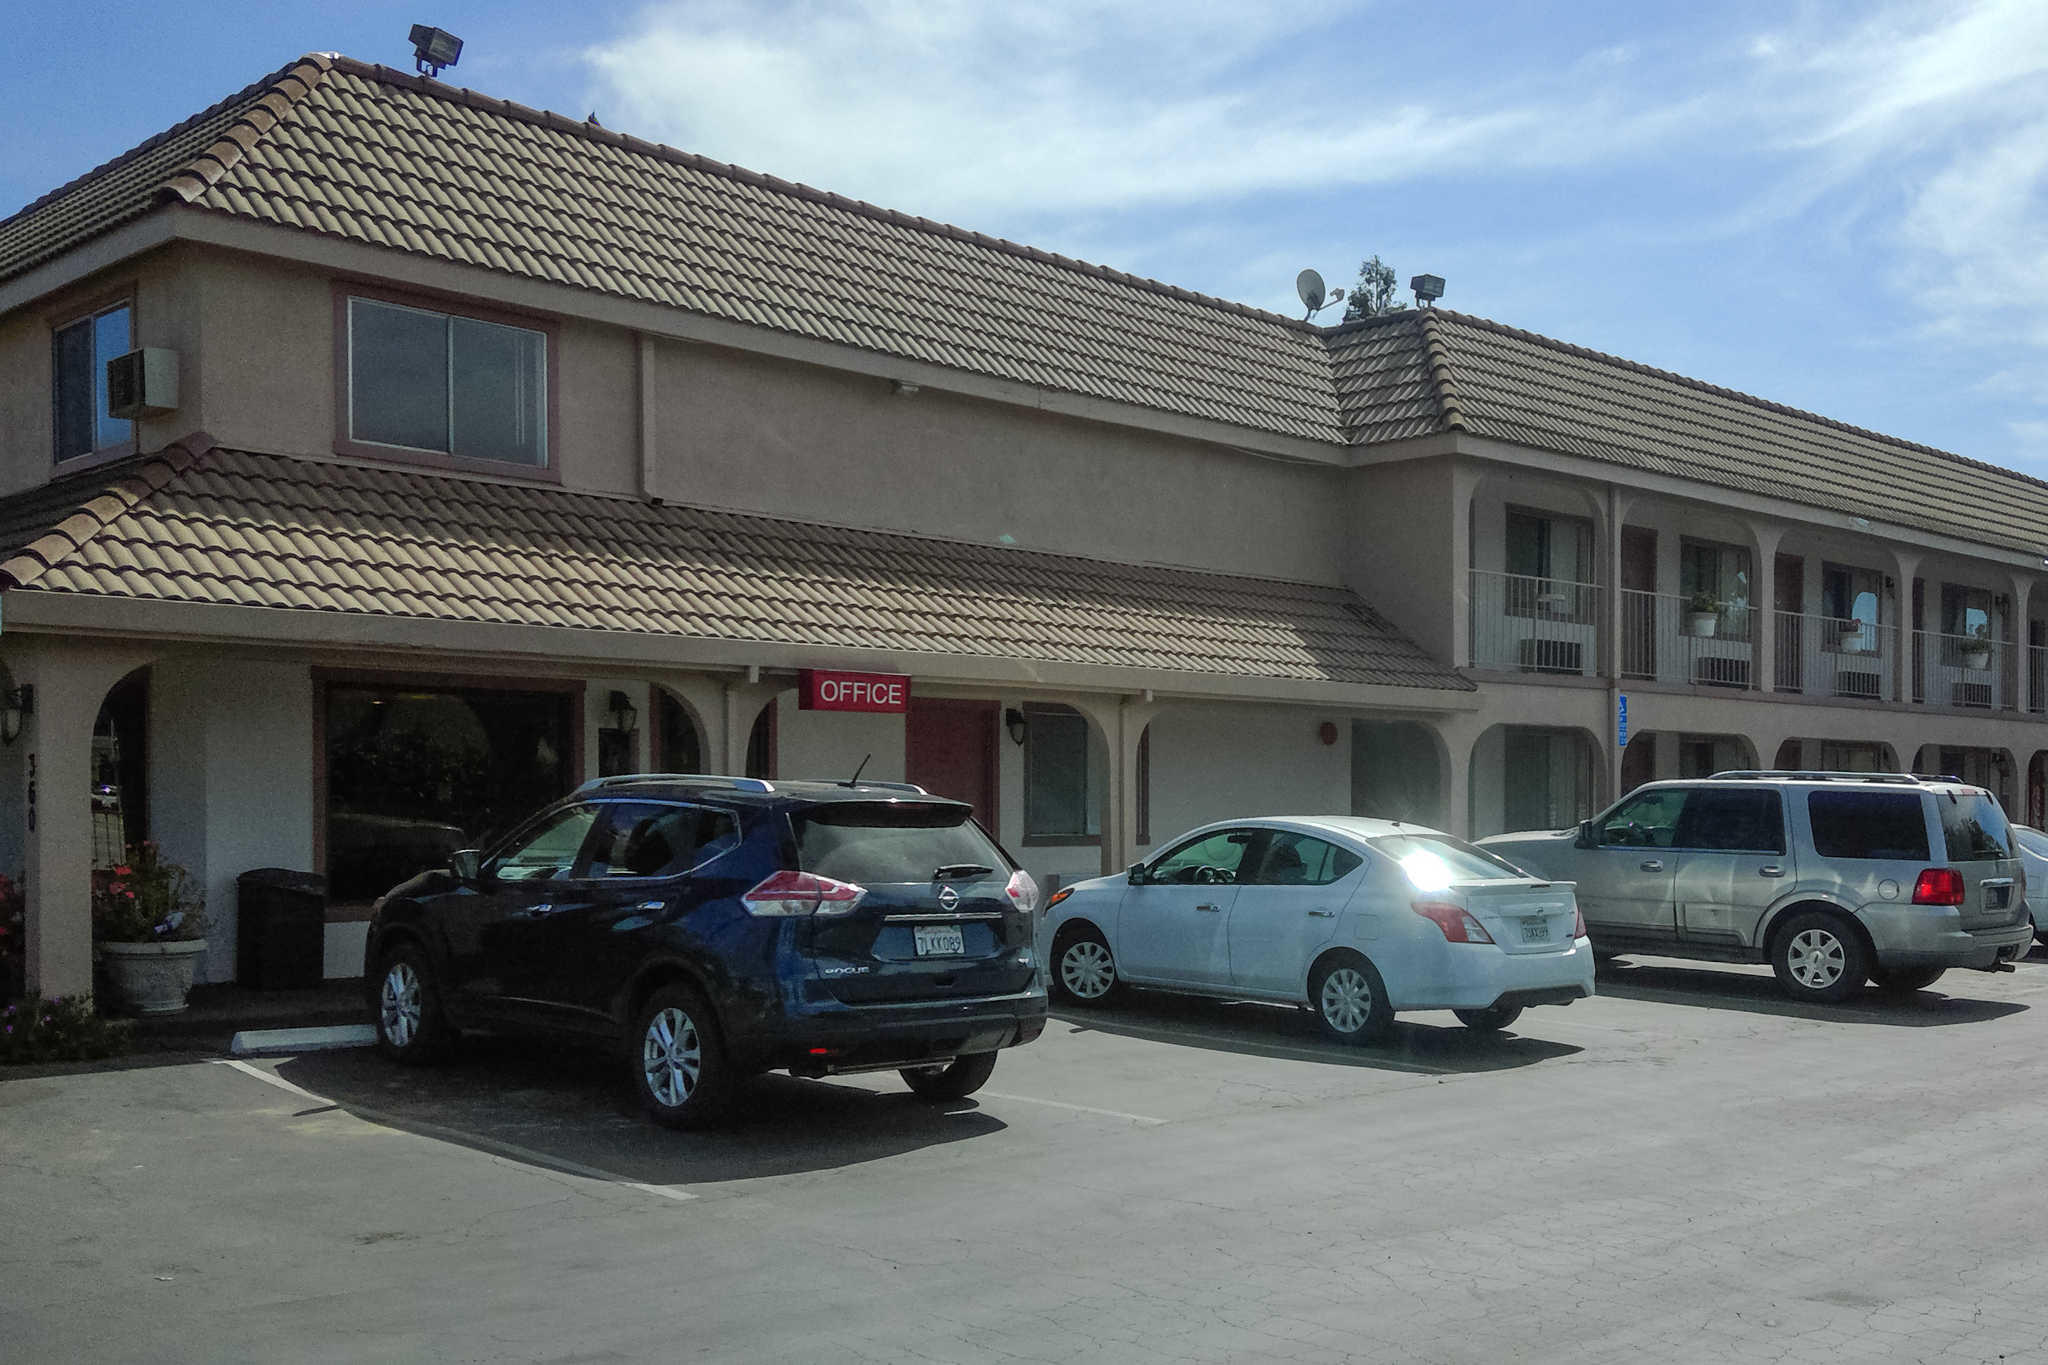 Hotels In Gilroy Ca Near Outlets